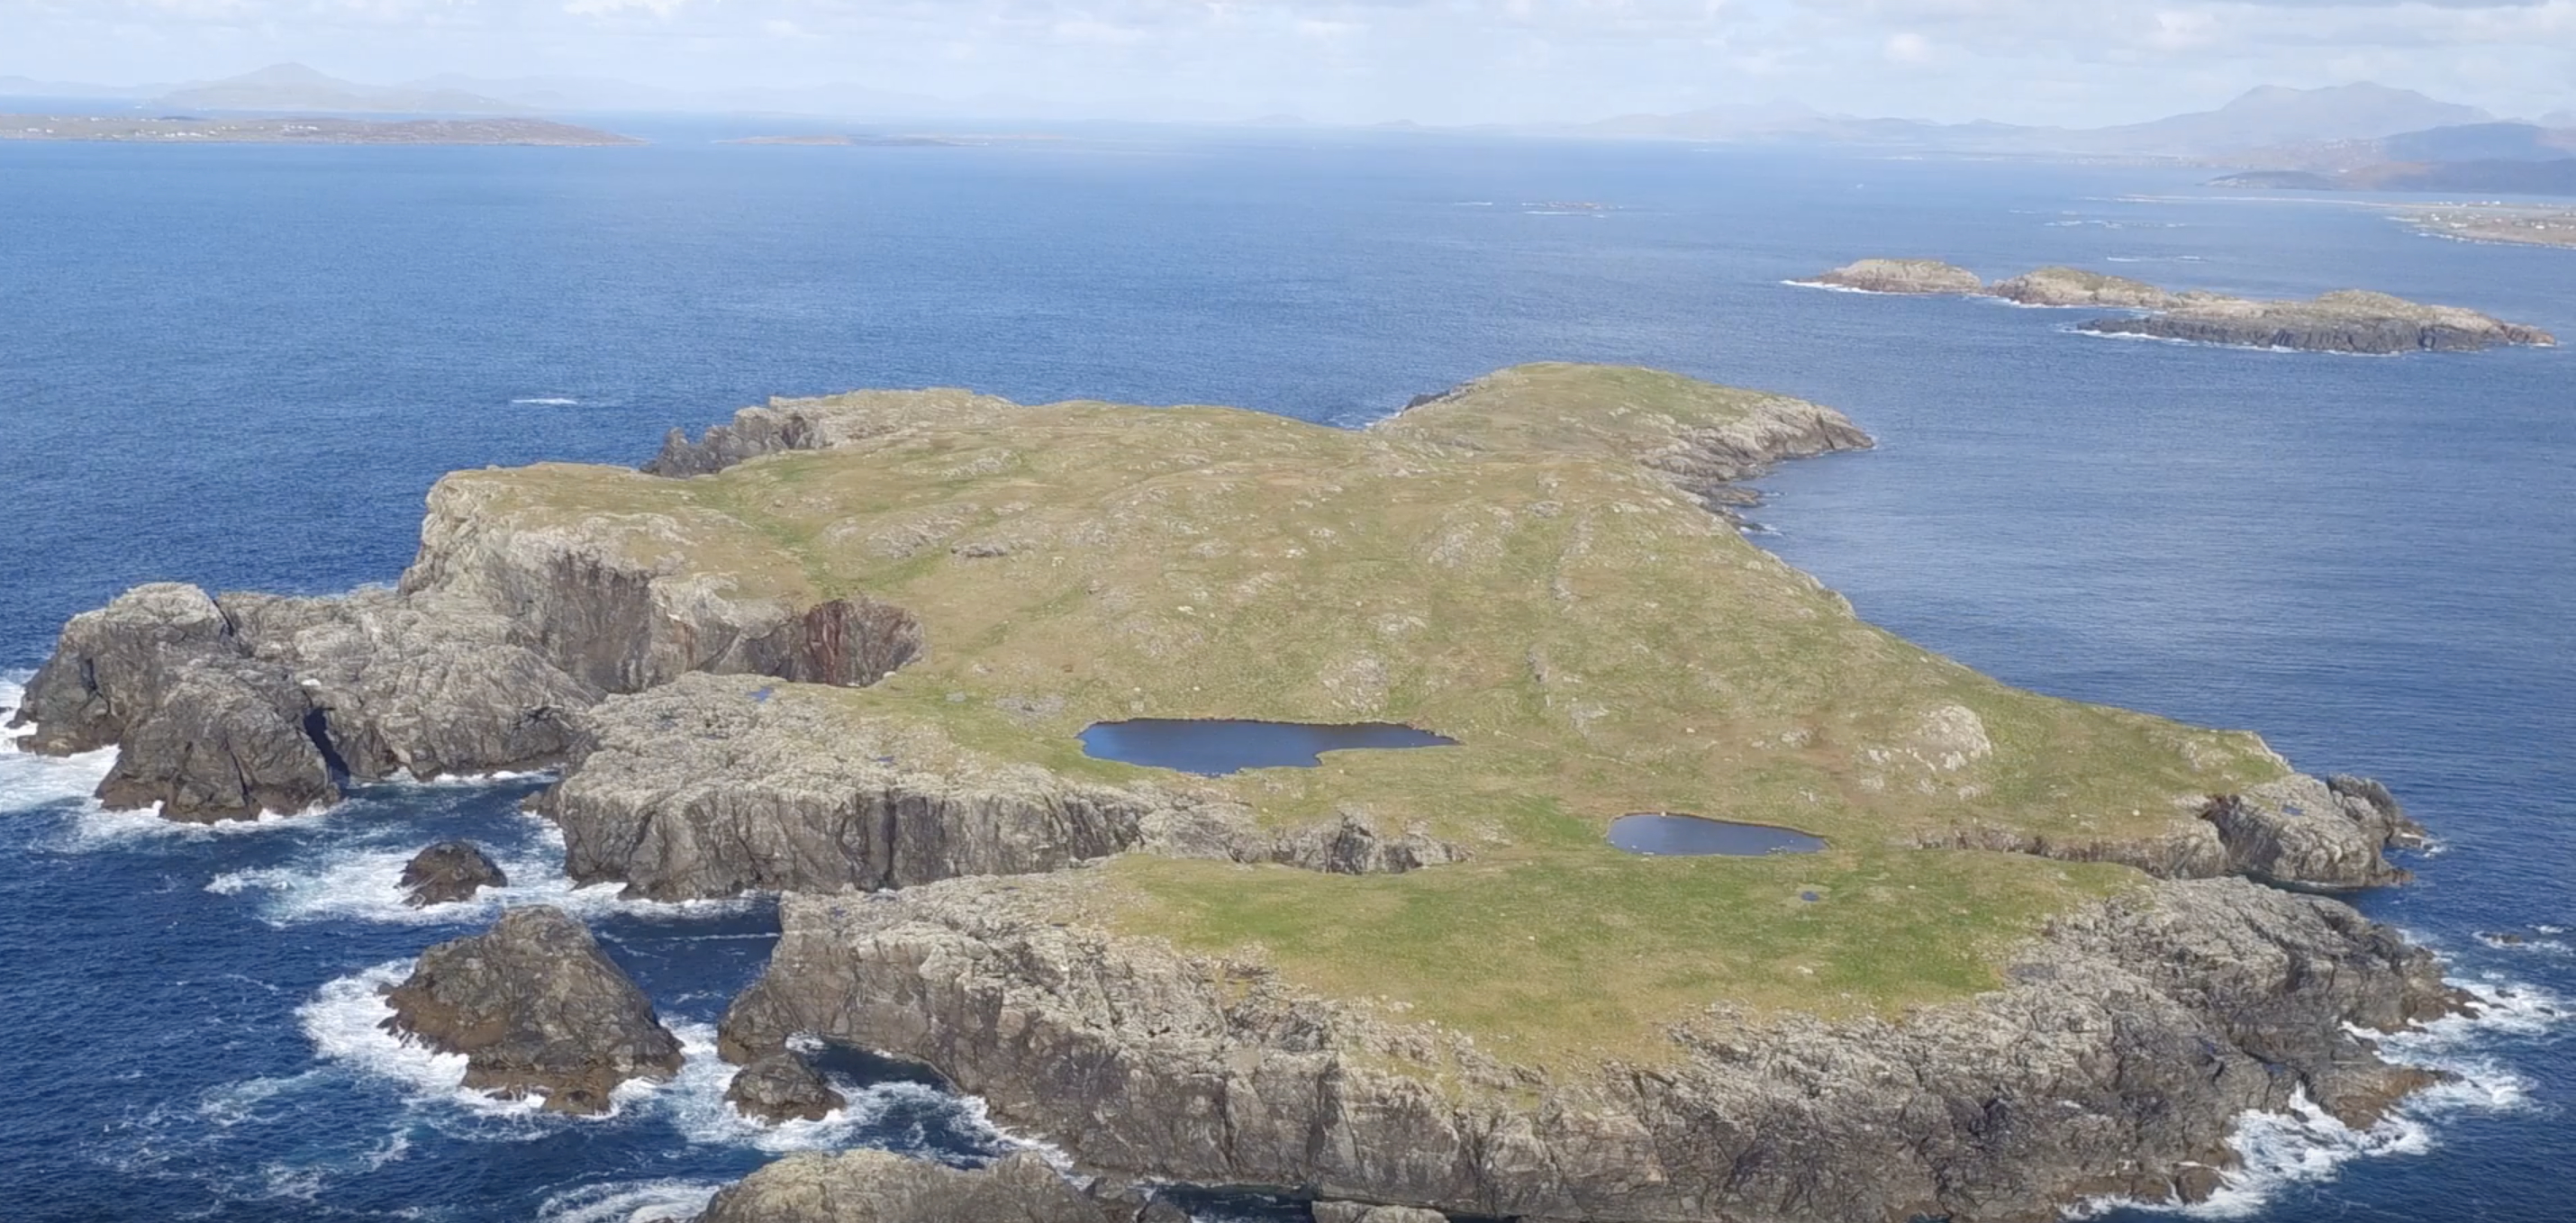 There's a Private Island in Ireland on the Market For $1.4 Million